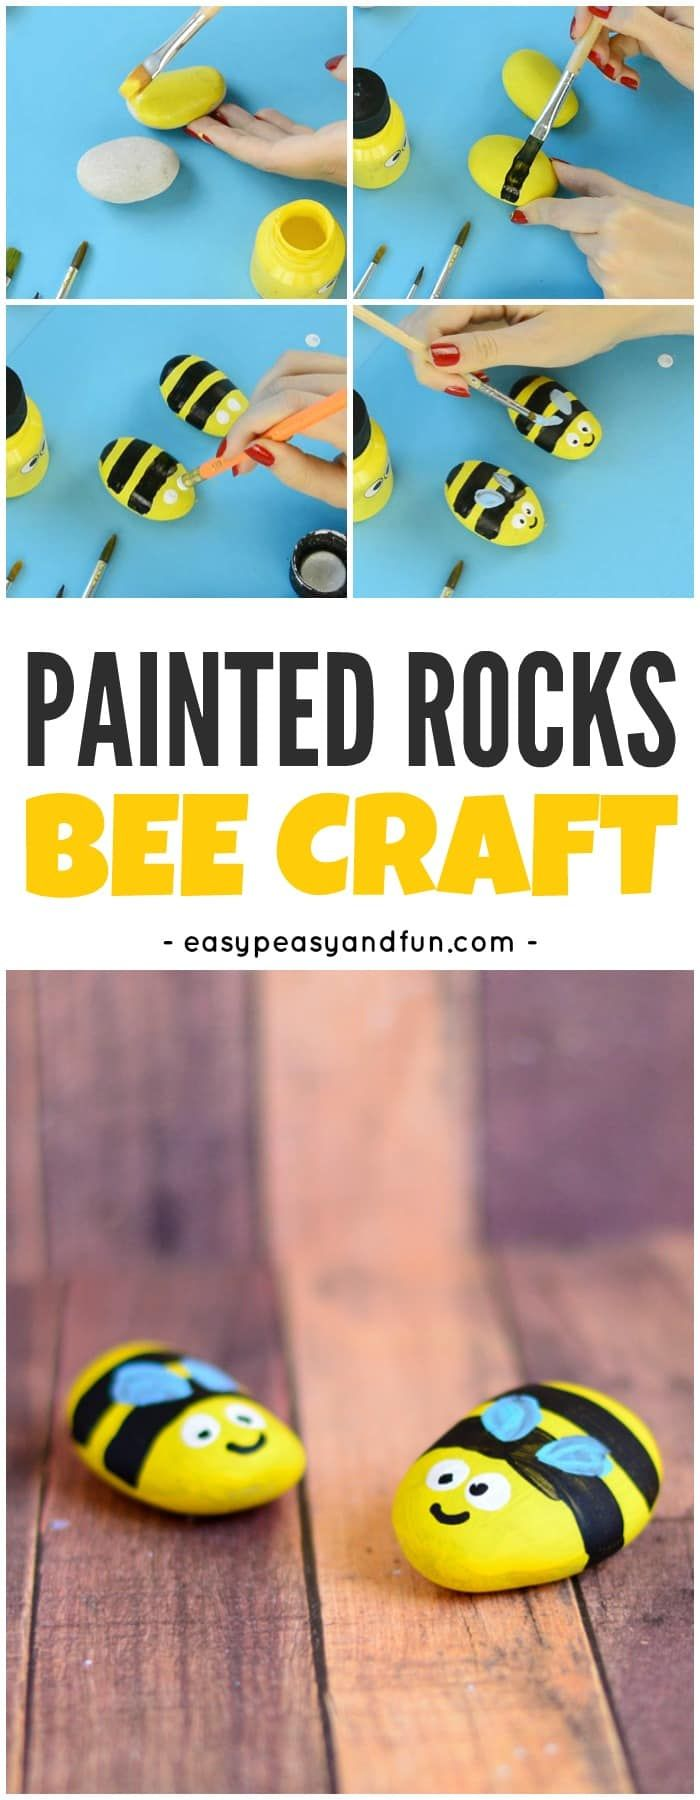 Baby safe paint for crafts - Bee Painted Rocks